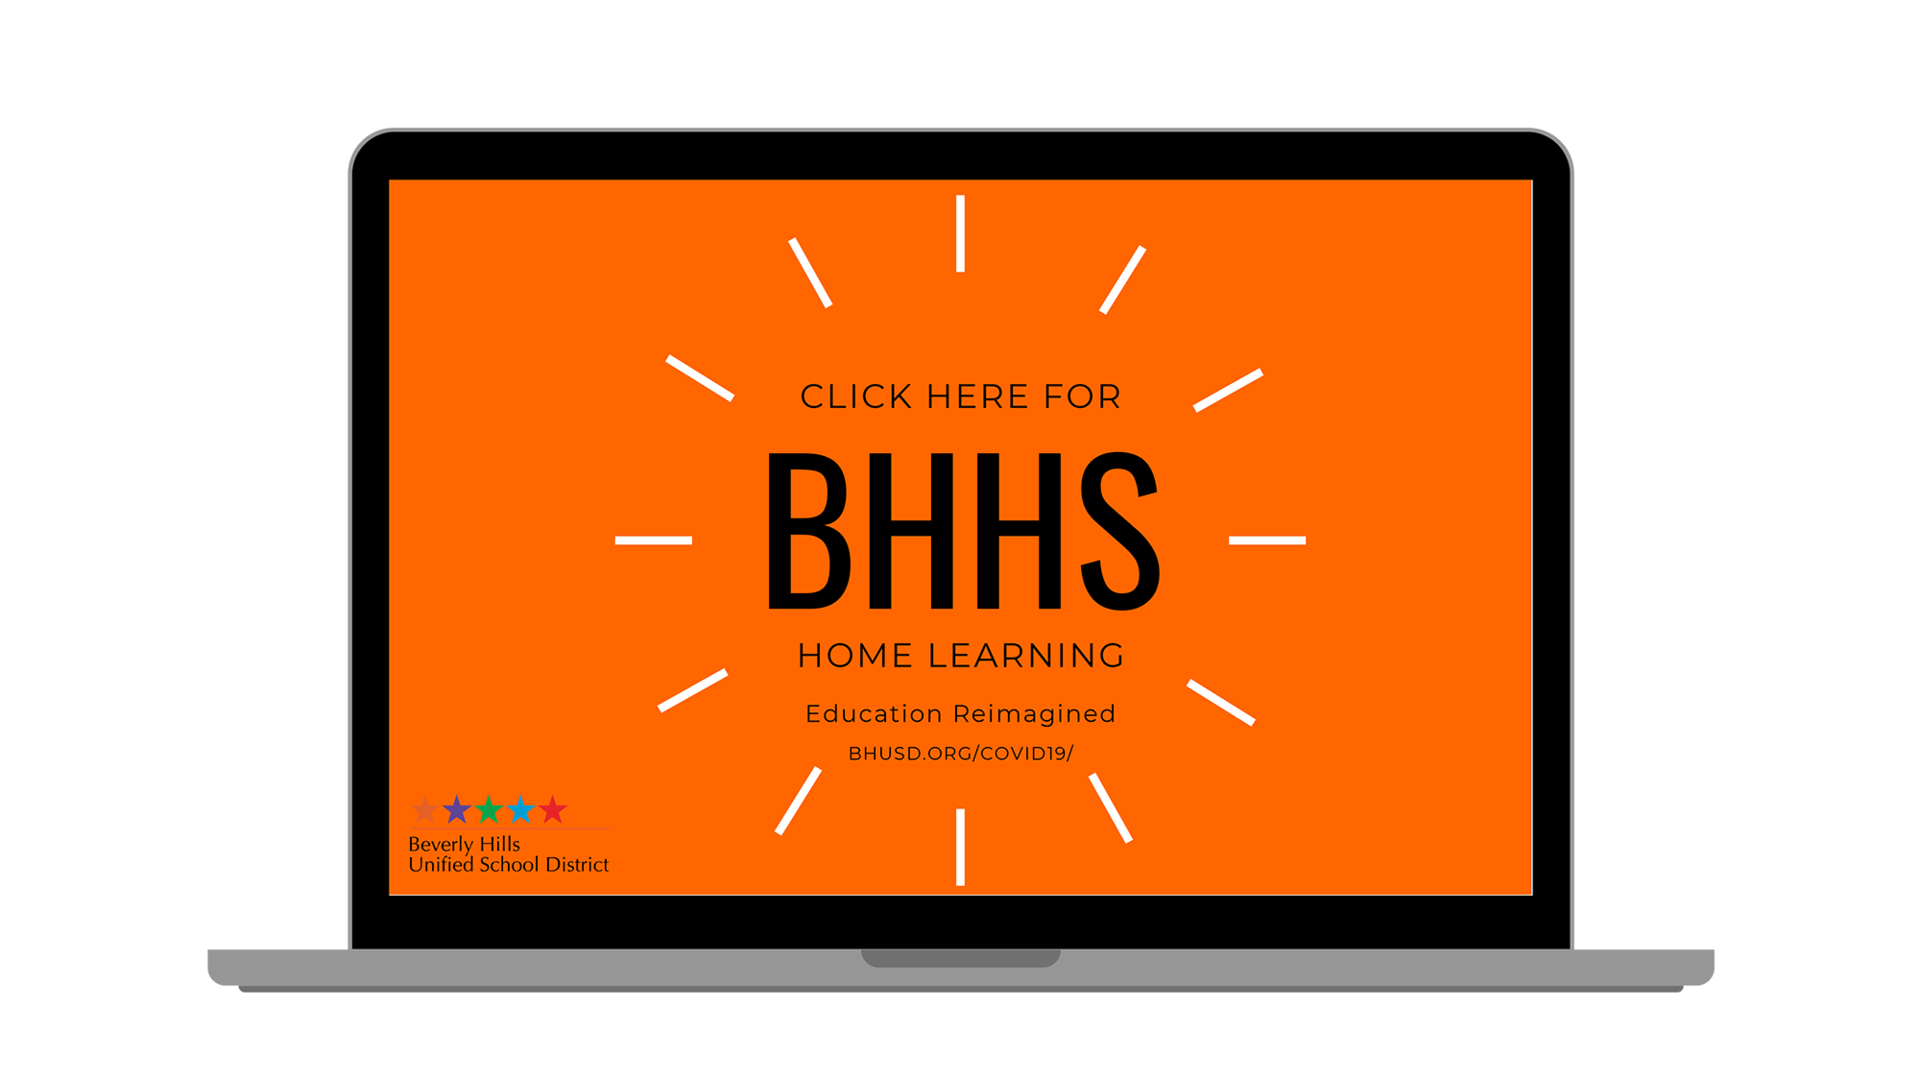 BHHS Home Learning